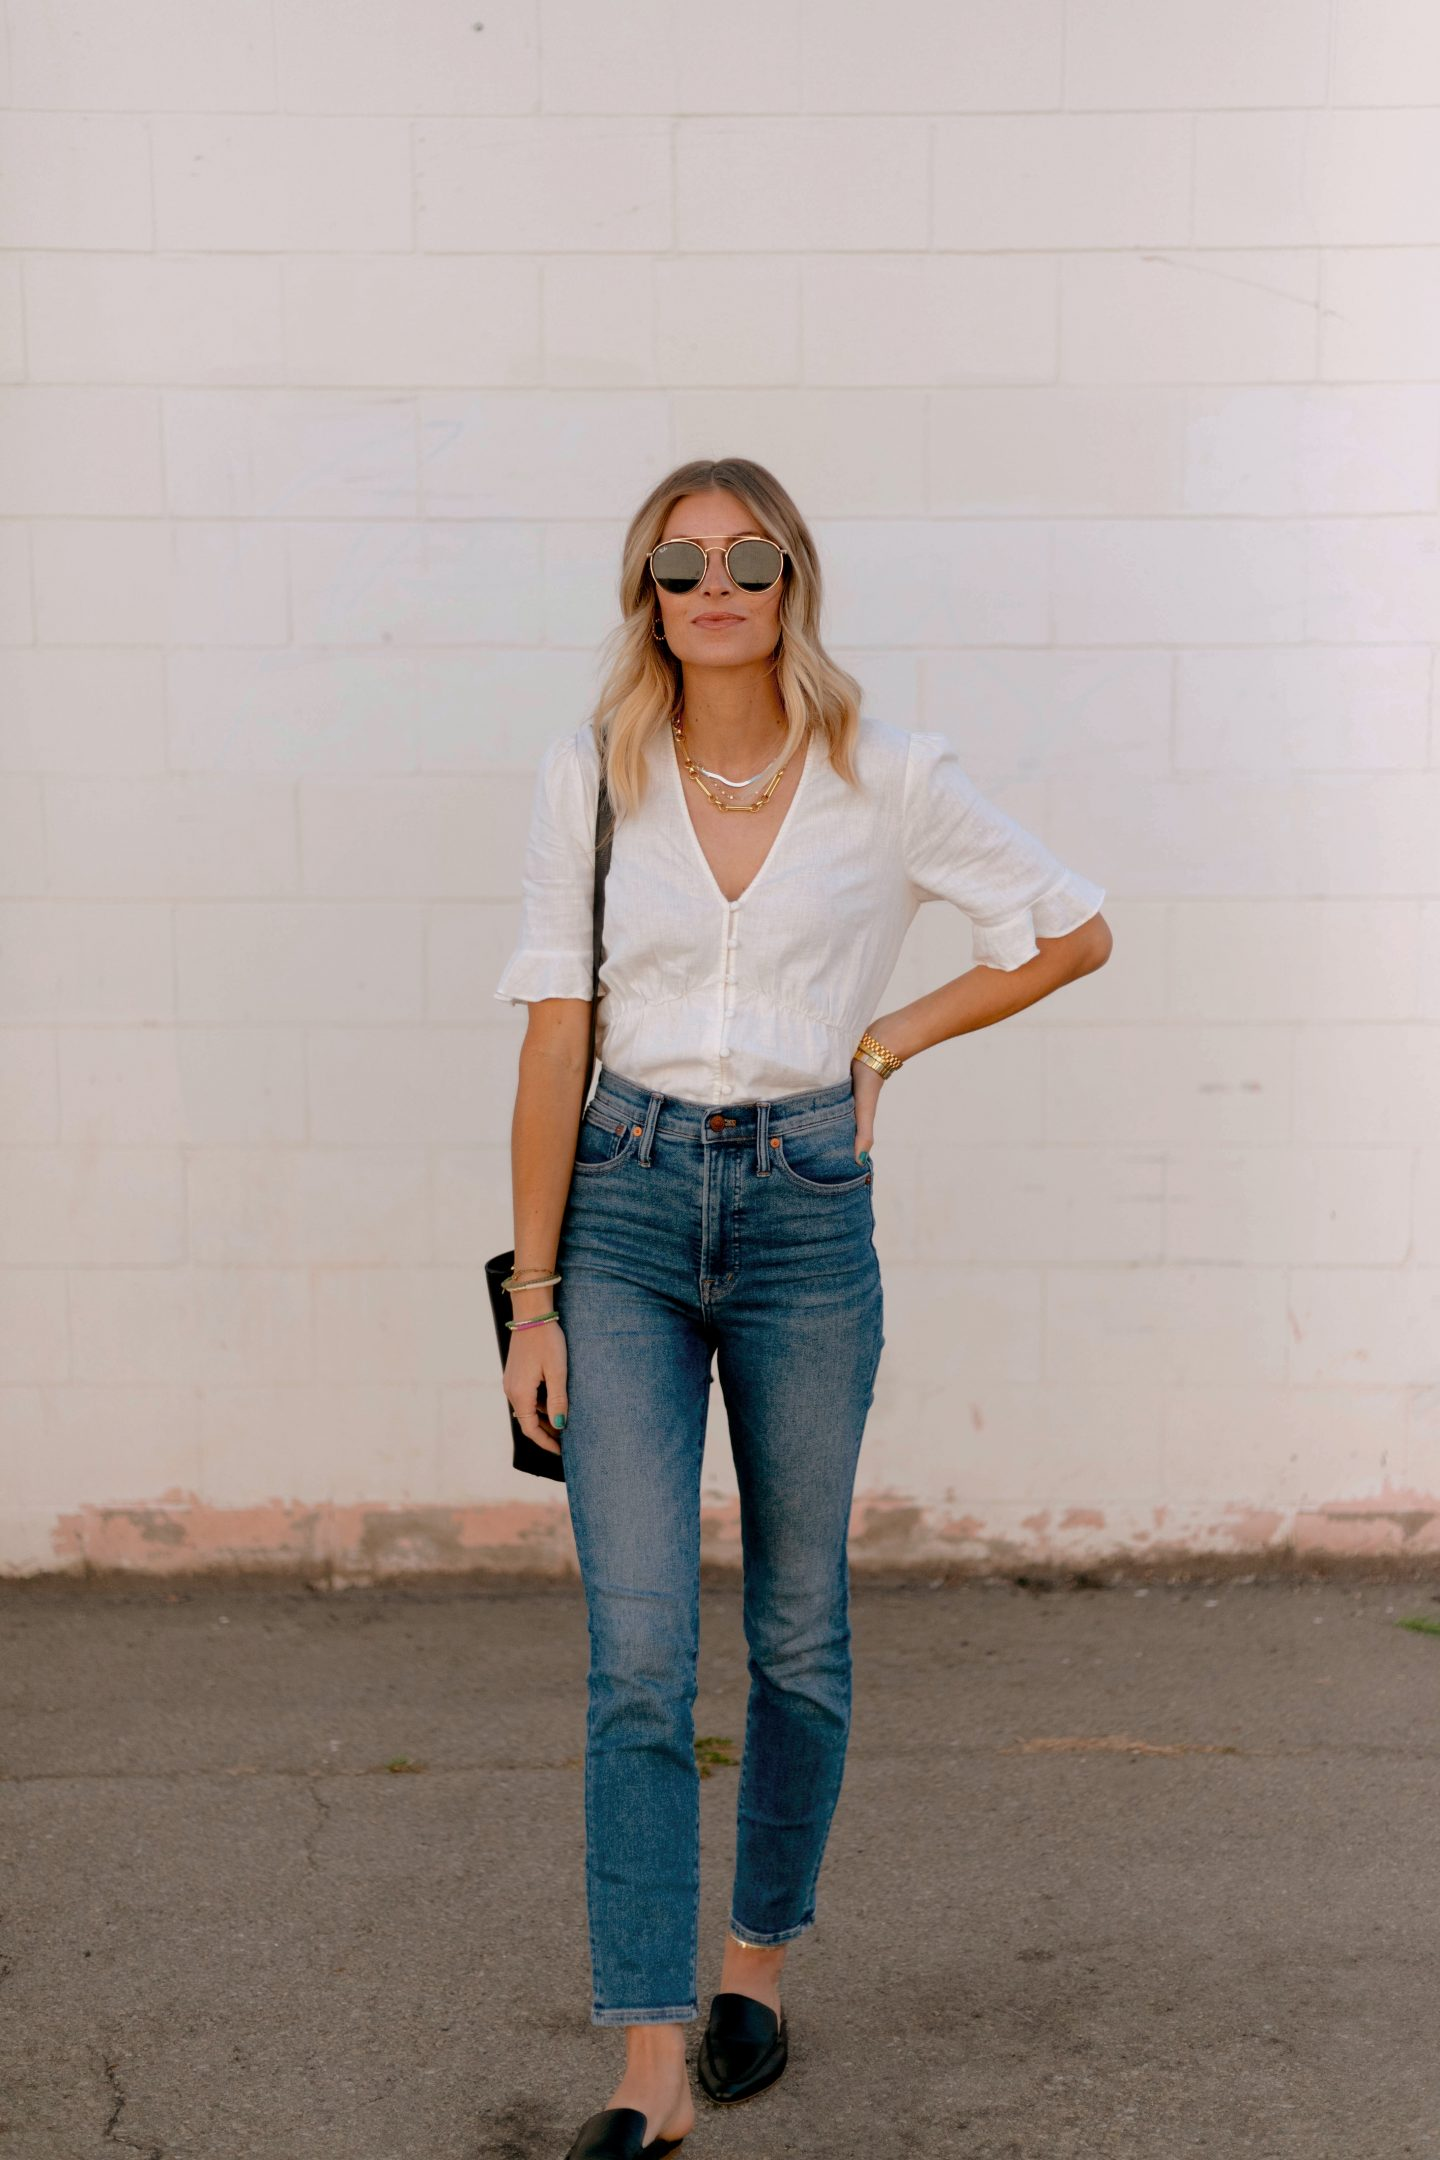 woman wearing white top and denim jeans